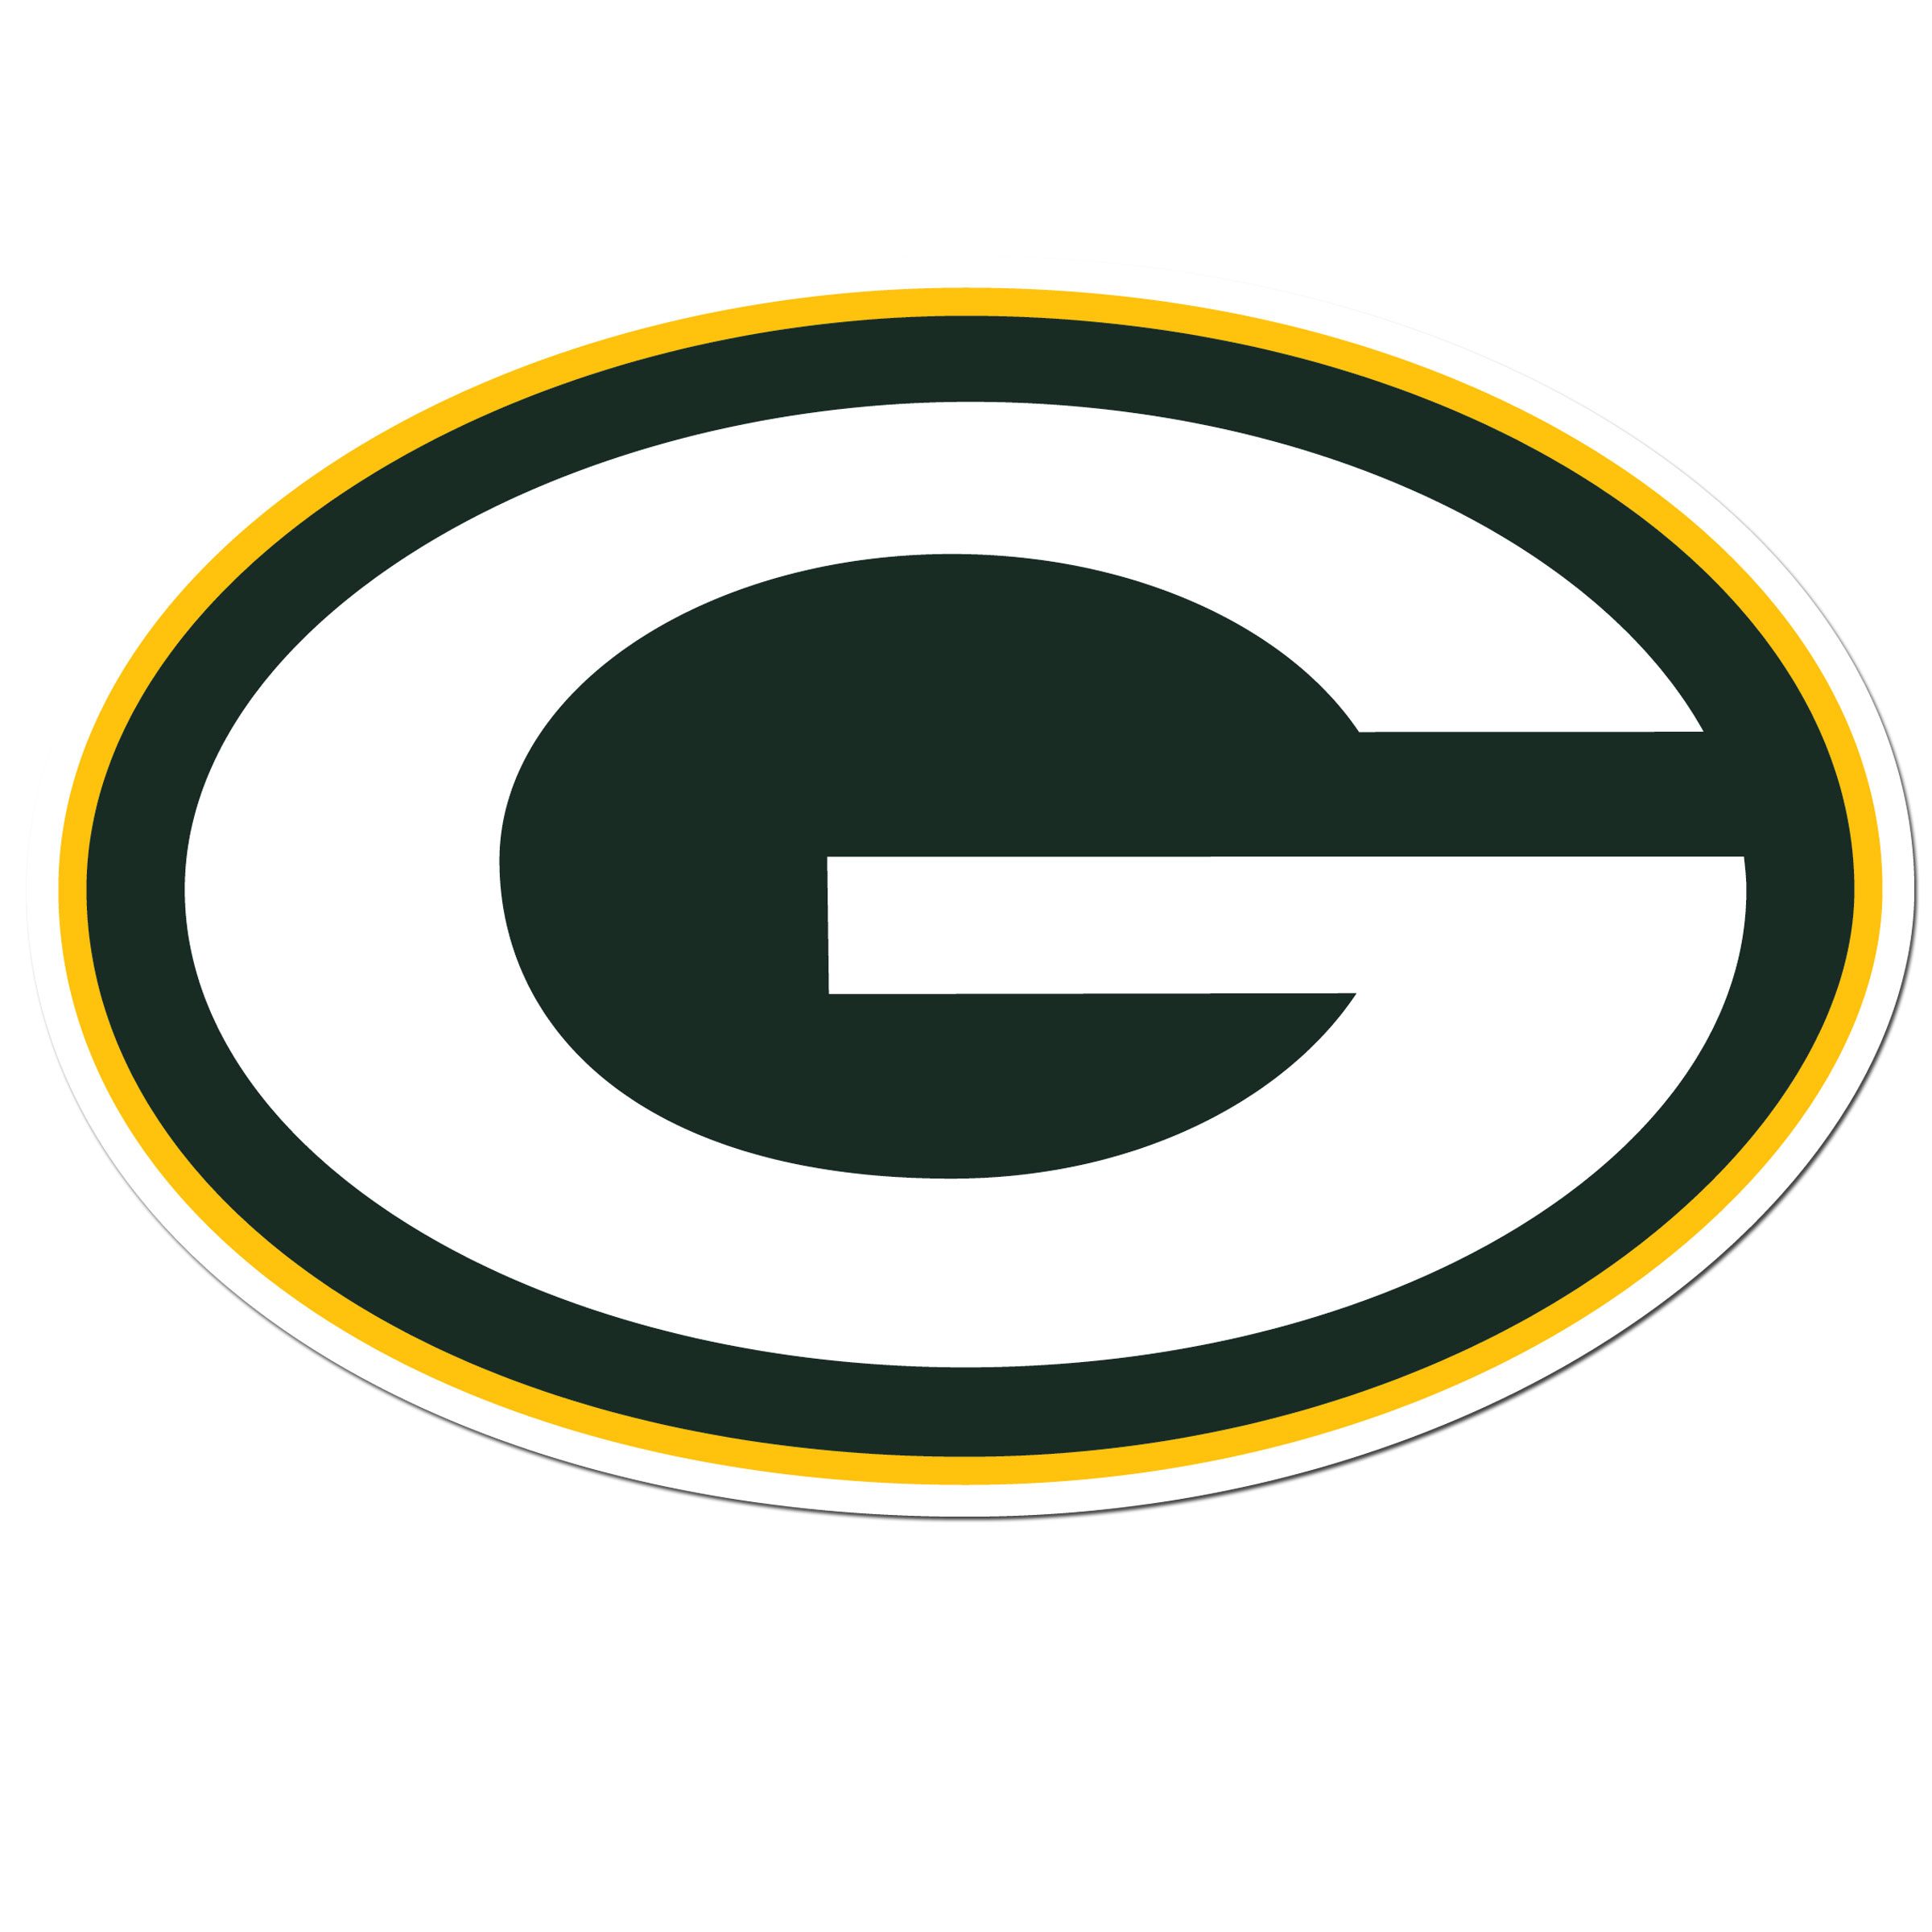 Green Bay Packers 8 inch Auto Decal - This bold, 8 inch Green Bay Packers is a great way to show off your team pride! The low tack vinyl decal is easily positioned and adjusted to make sure you get that logo in just the right spot on your vehicle. Designed to be used on the outside of the window.